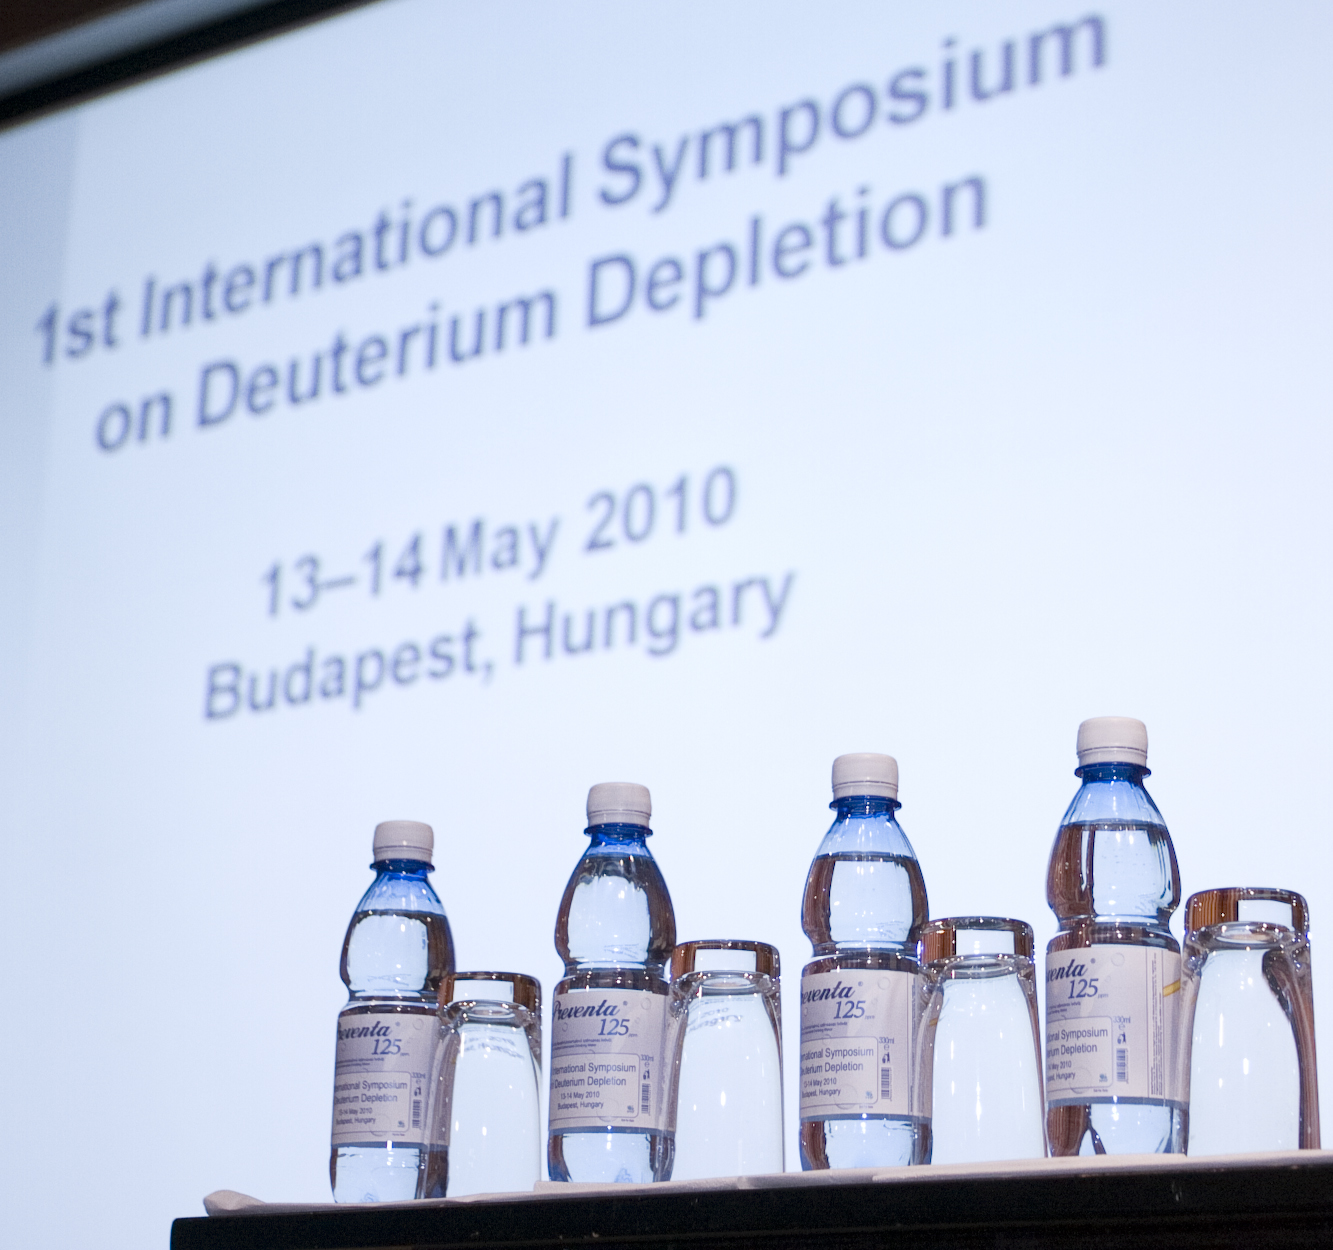 1st International Symposium on Deuterium Depletion 2010